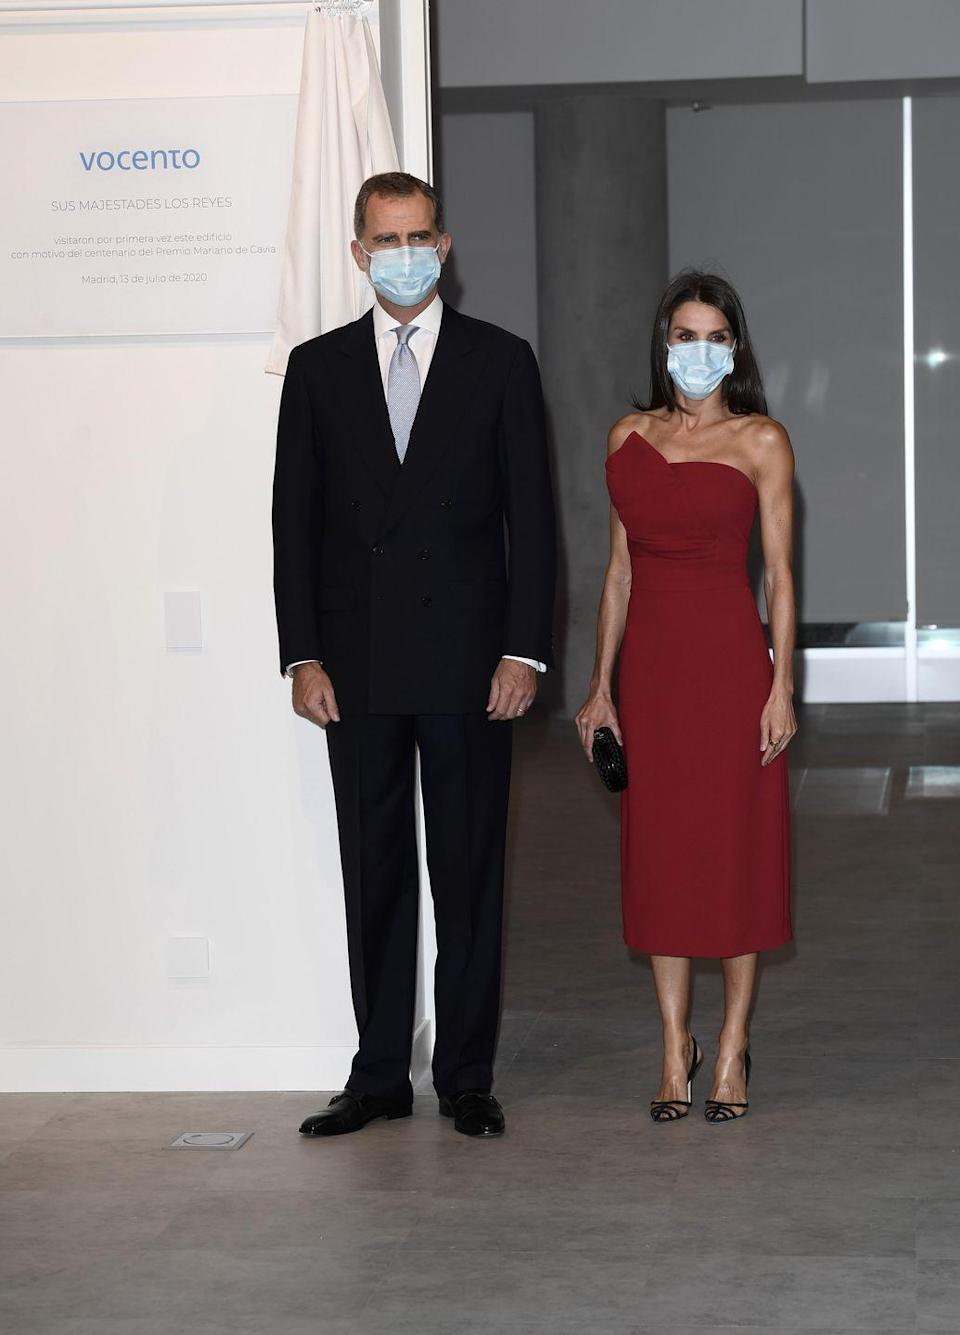 <p>Queen Letizia of Spain joins her husband King Felipe at a dinner in honor journalists. For the event she chose a rich red dress and accessorized with a small black clutch and a medical mask.</p>